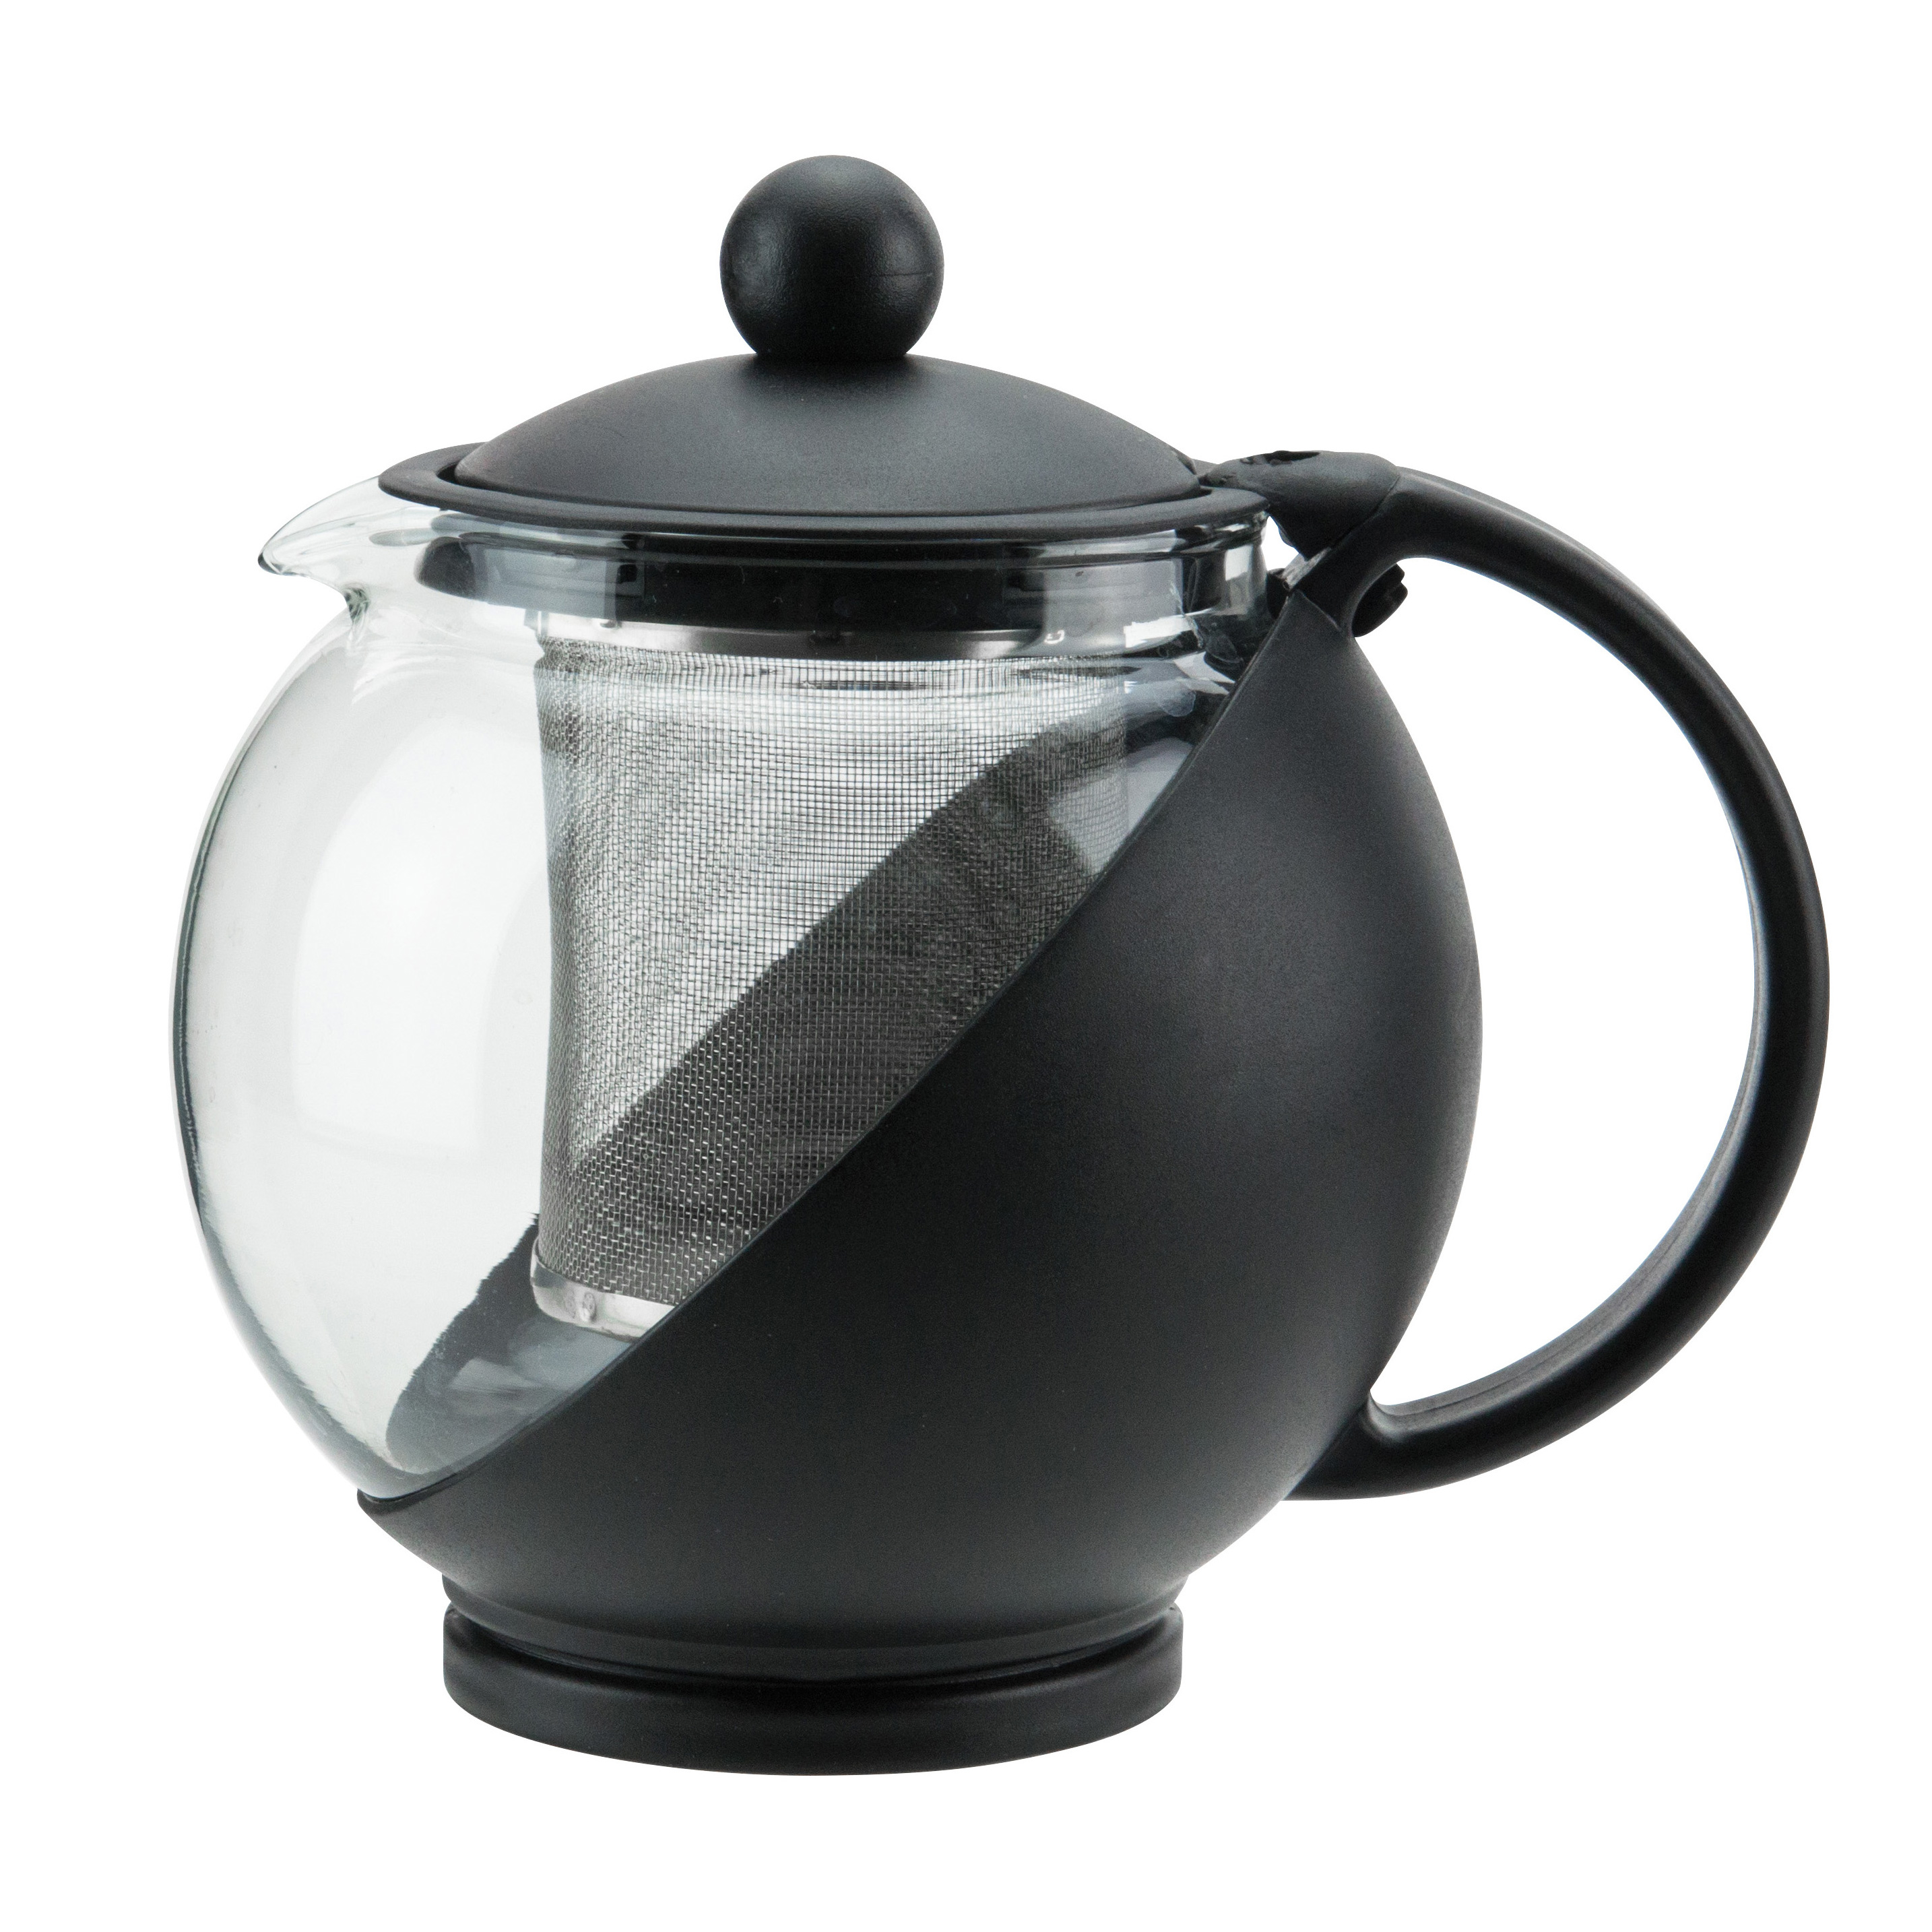 Winco GTP-25 coffee pot/teapot, glass